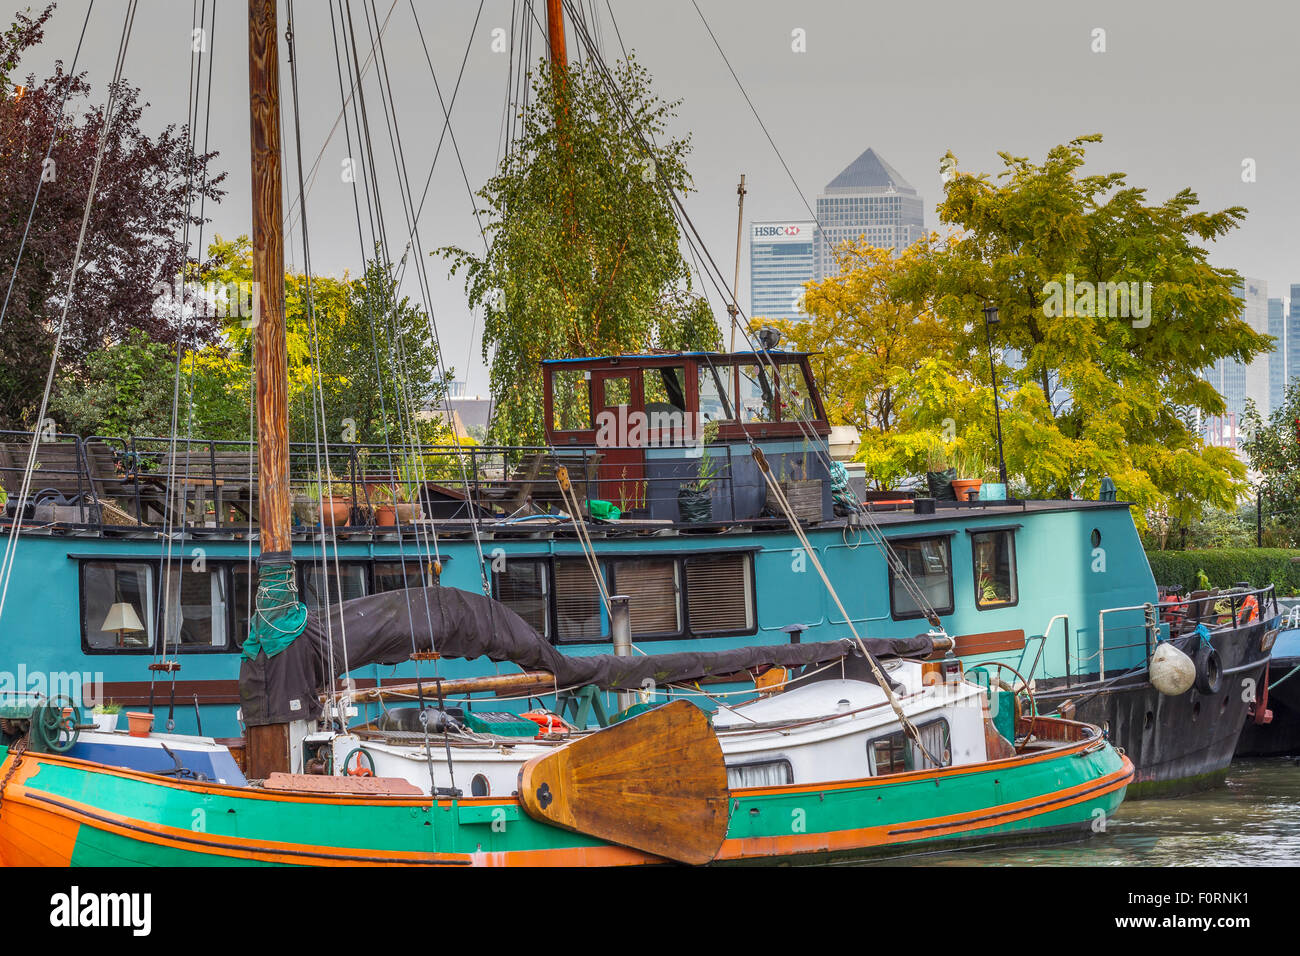 Houseboat and Yacht moored in front of trees on The River Thames near Bermondsey with Canary Wharf Towers including - Stock Image